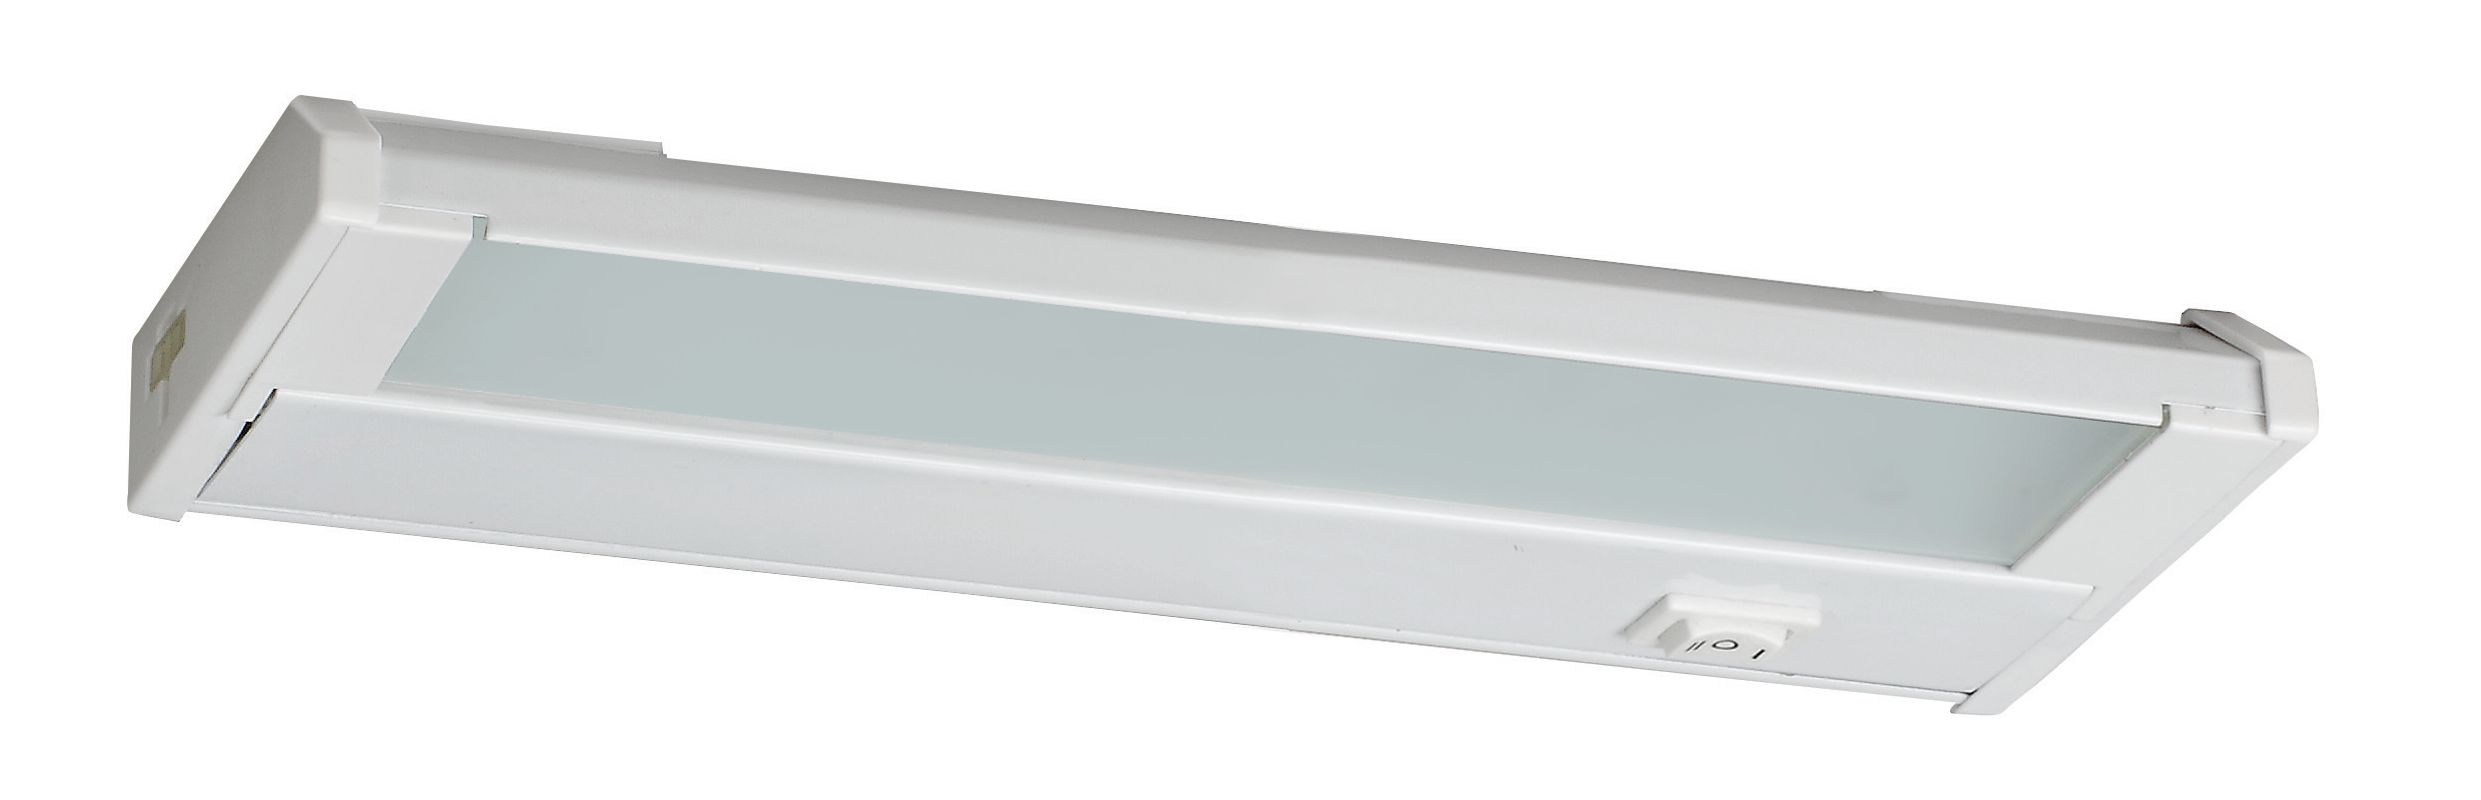 afx nxl220wh white xenon 14 under cabinet 120v low